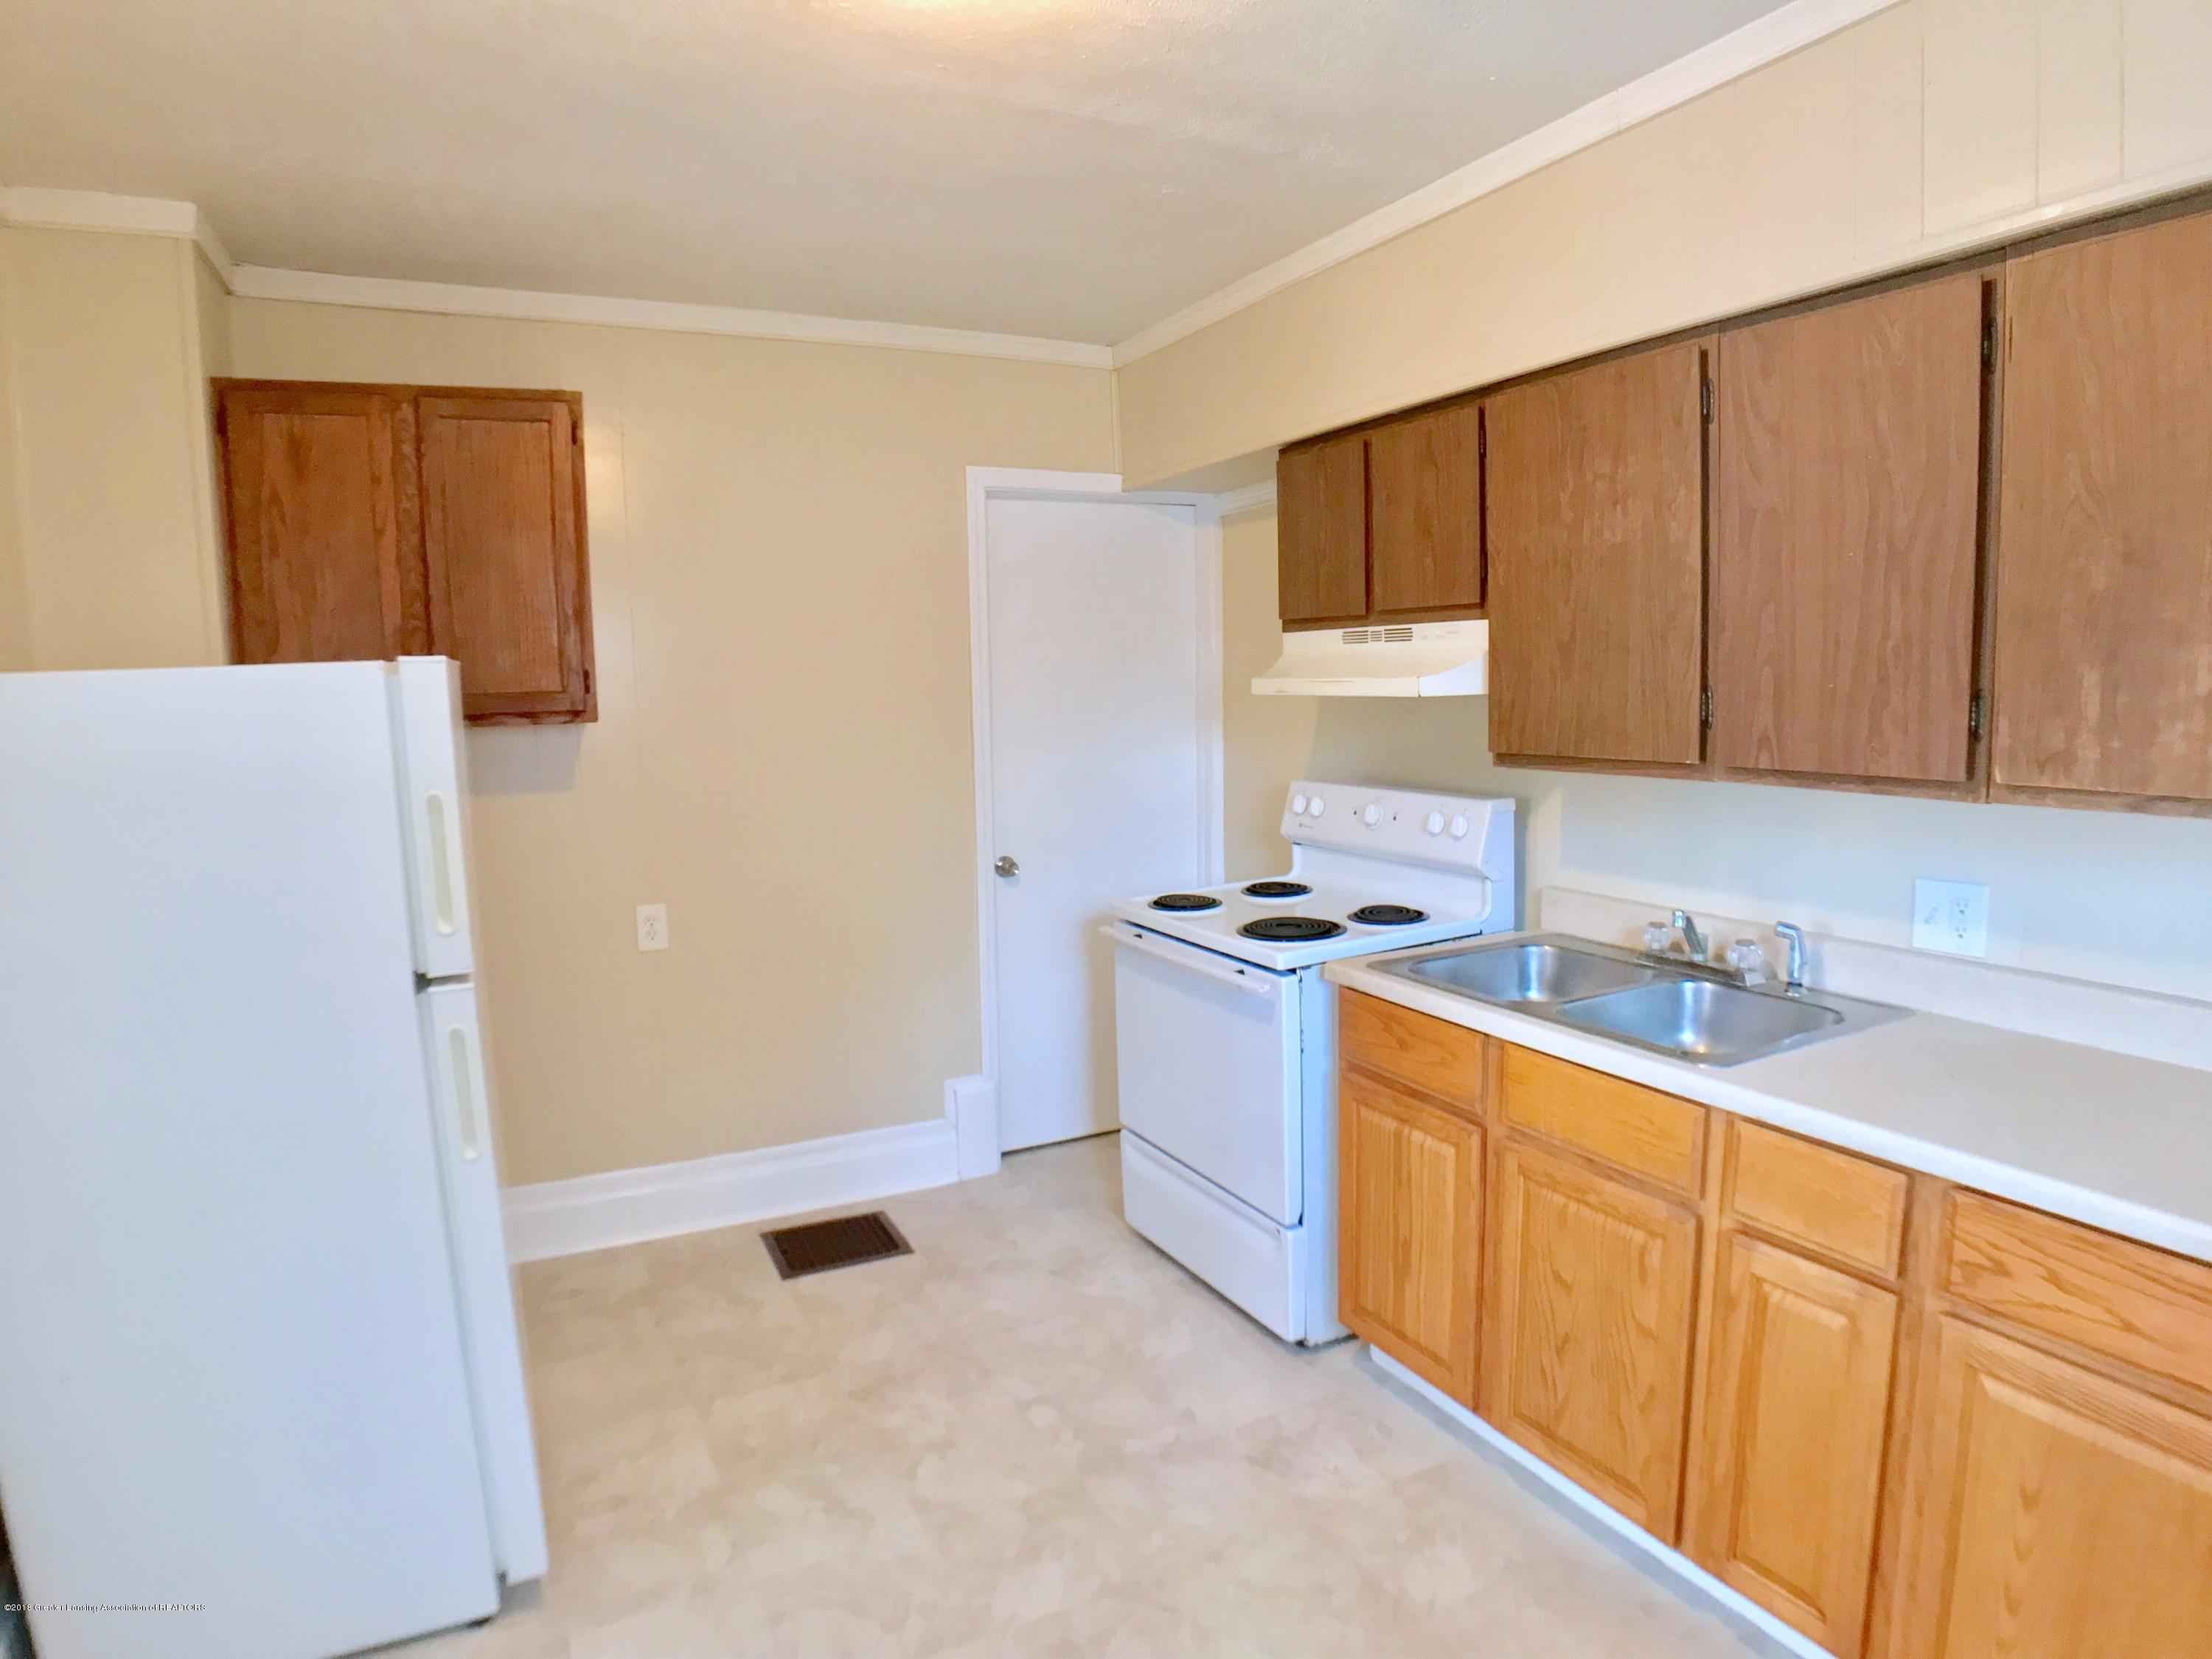 714 N Pine St - Kitchen - 9